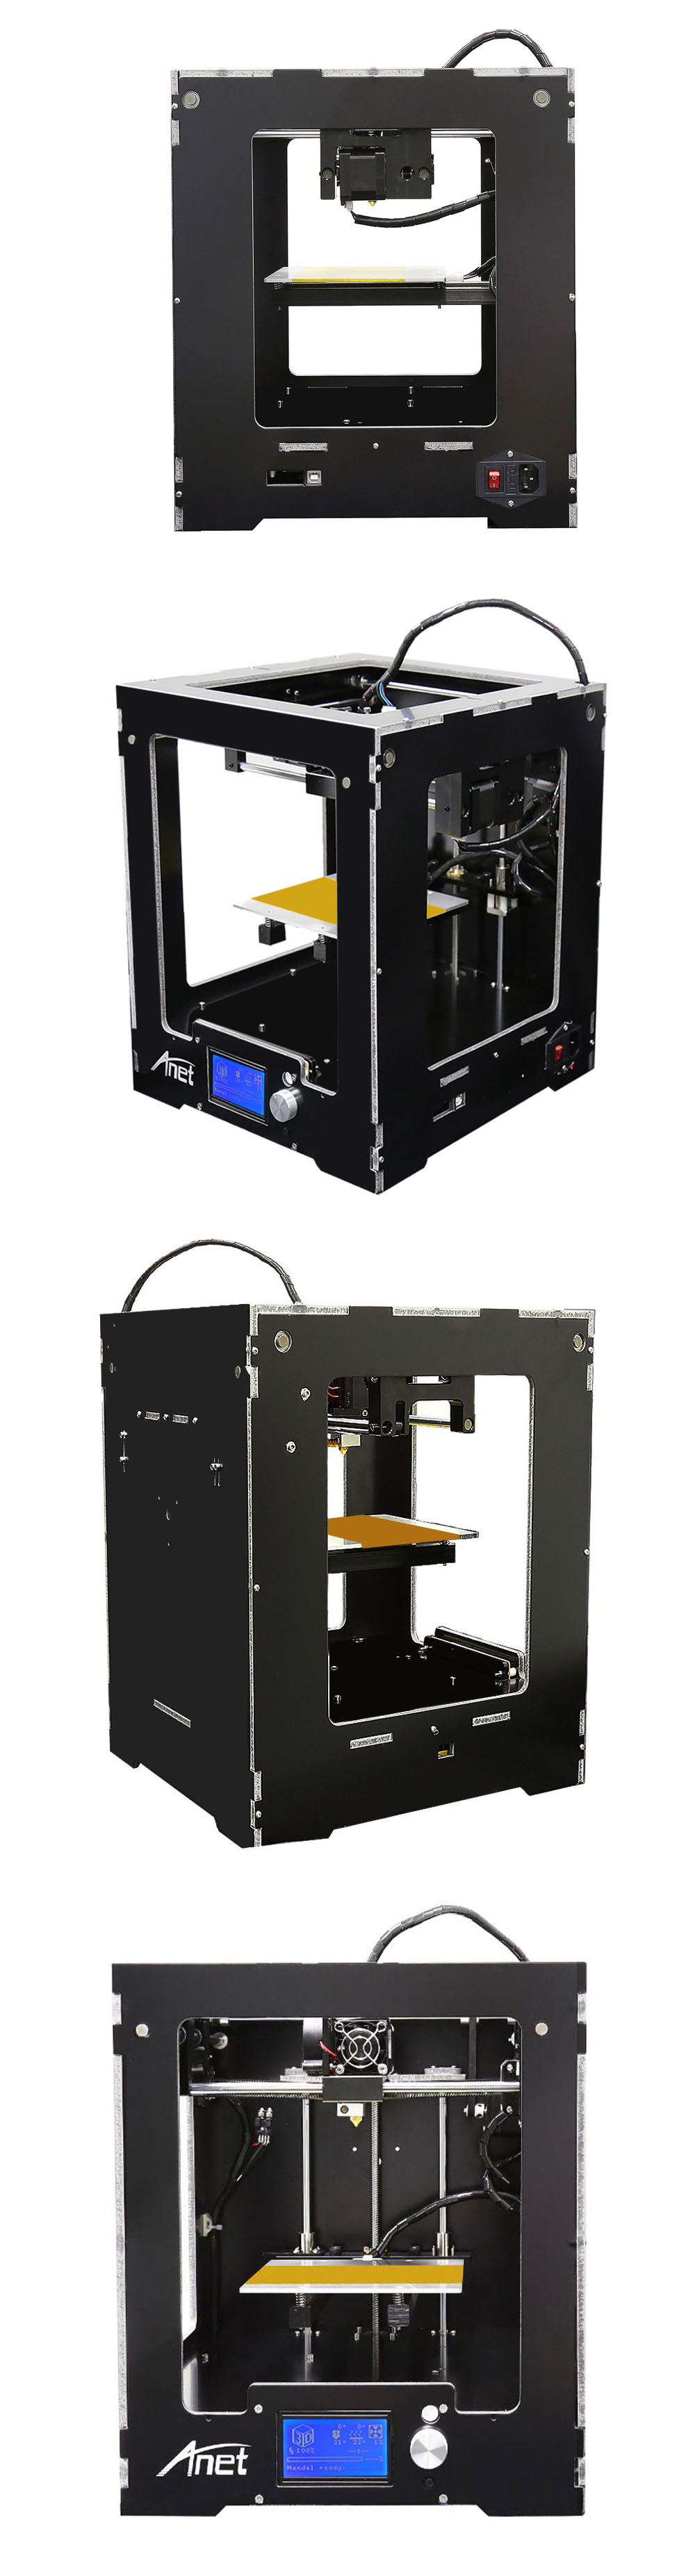 Anet A3 High Precision Full Aluminum Plastic Frame Assembled 3D Printer LCD Display Support 16GB TF Card